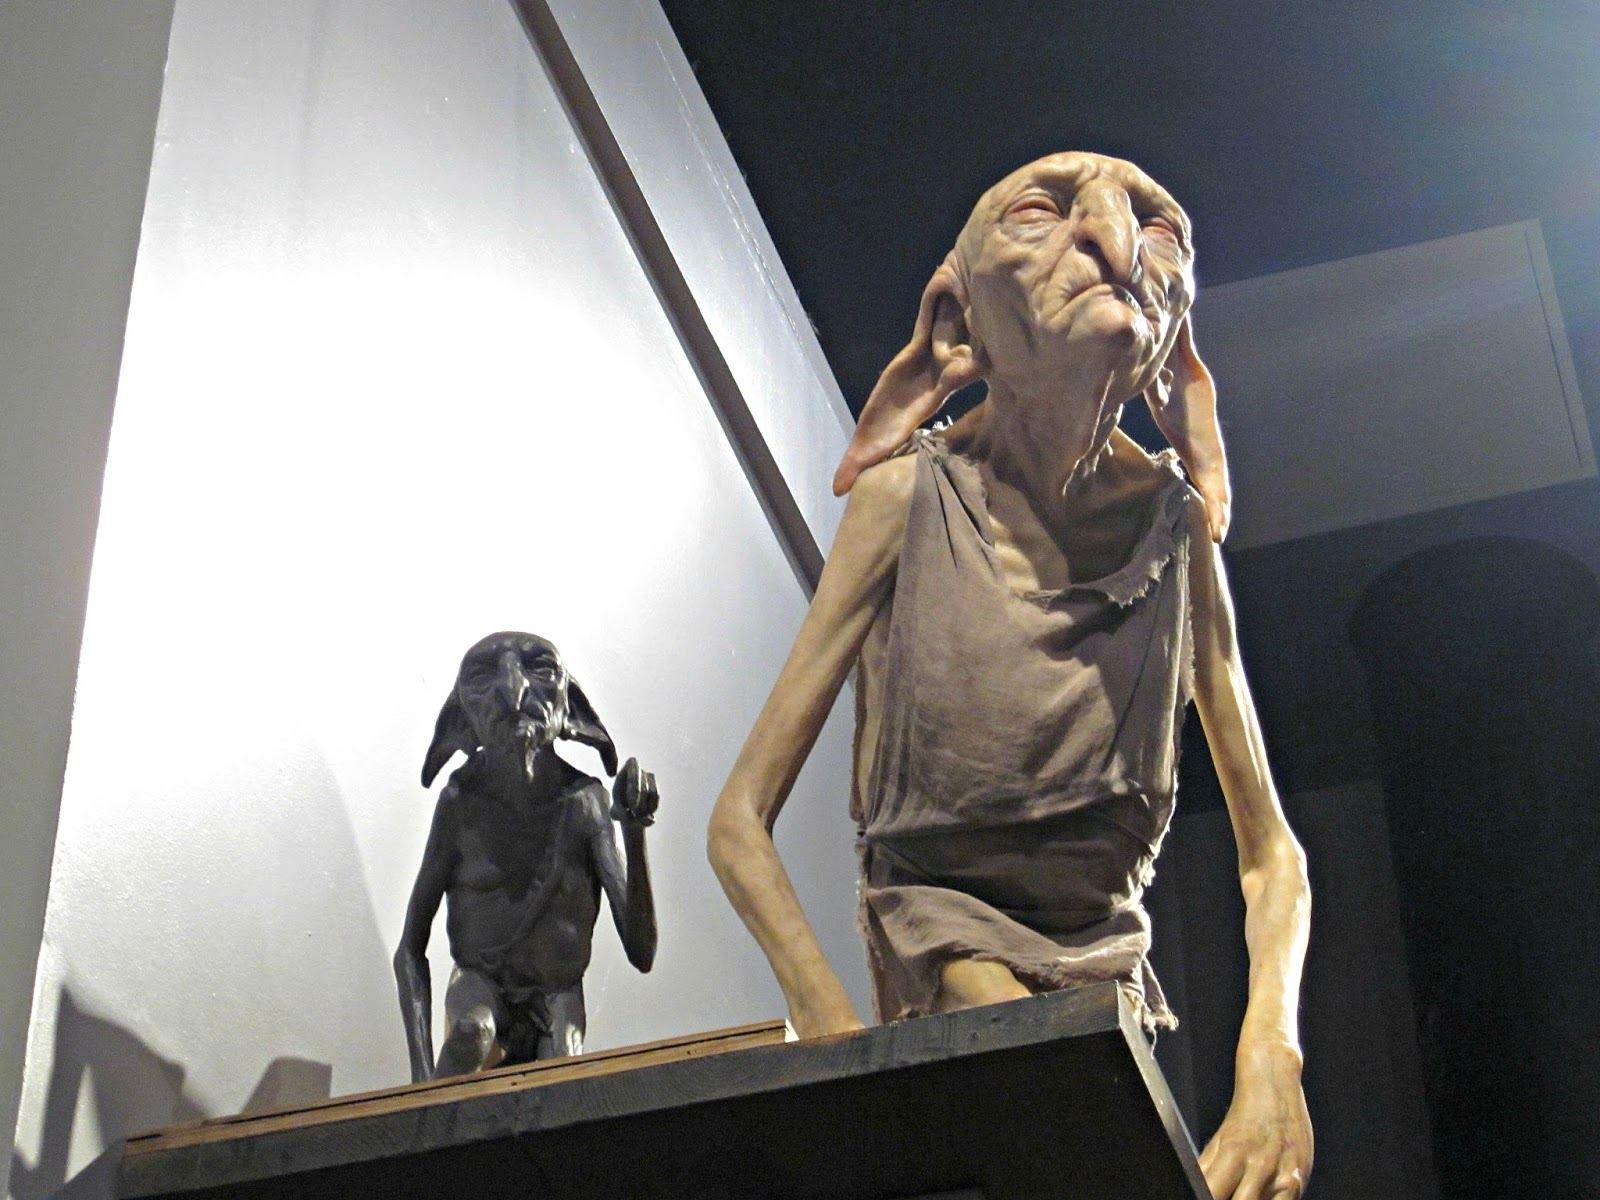 Kreacher at The Making Of Harry Potter Warner Brothers Studio Tour